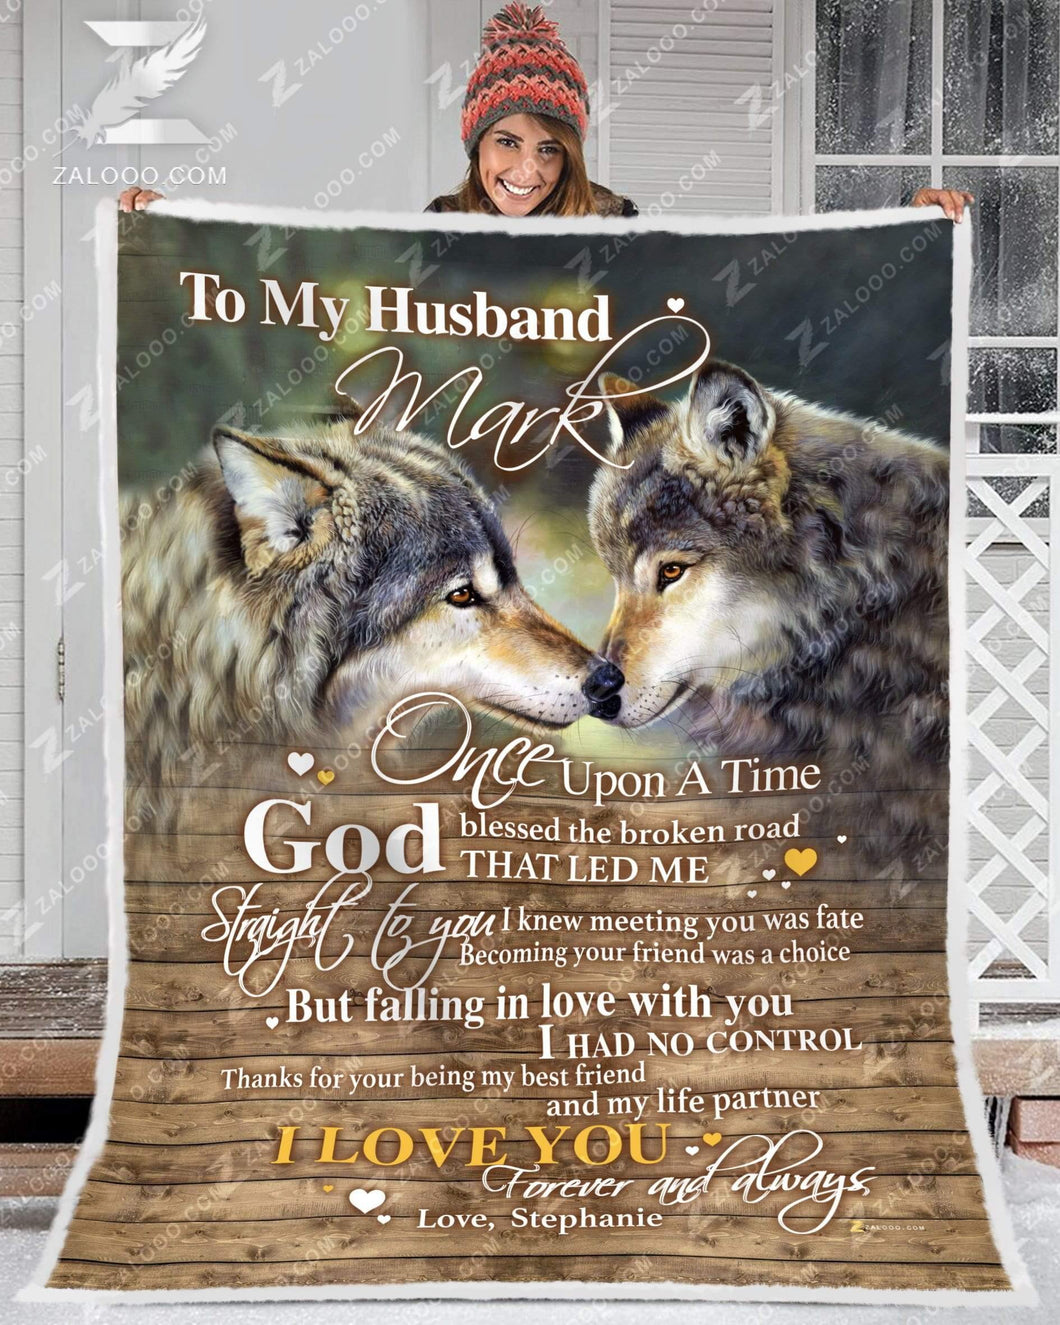 BLANKET WOLF To my Husband (Custom) God Blessed The Broken Road Ver2 - Zalooo.com Custom Wall Art Canvas